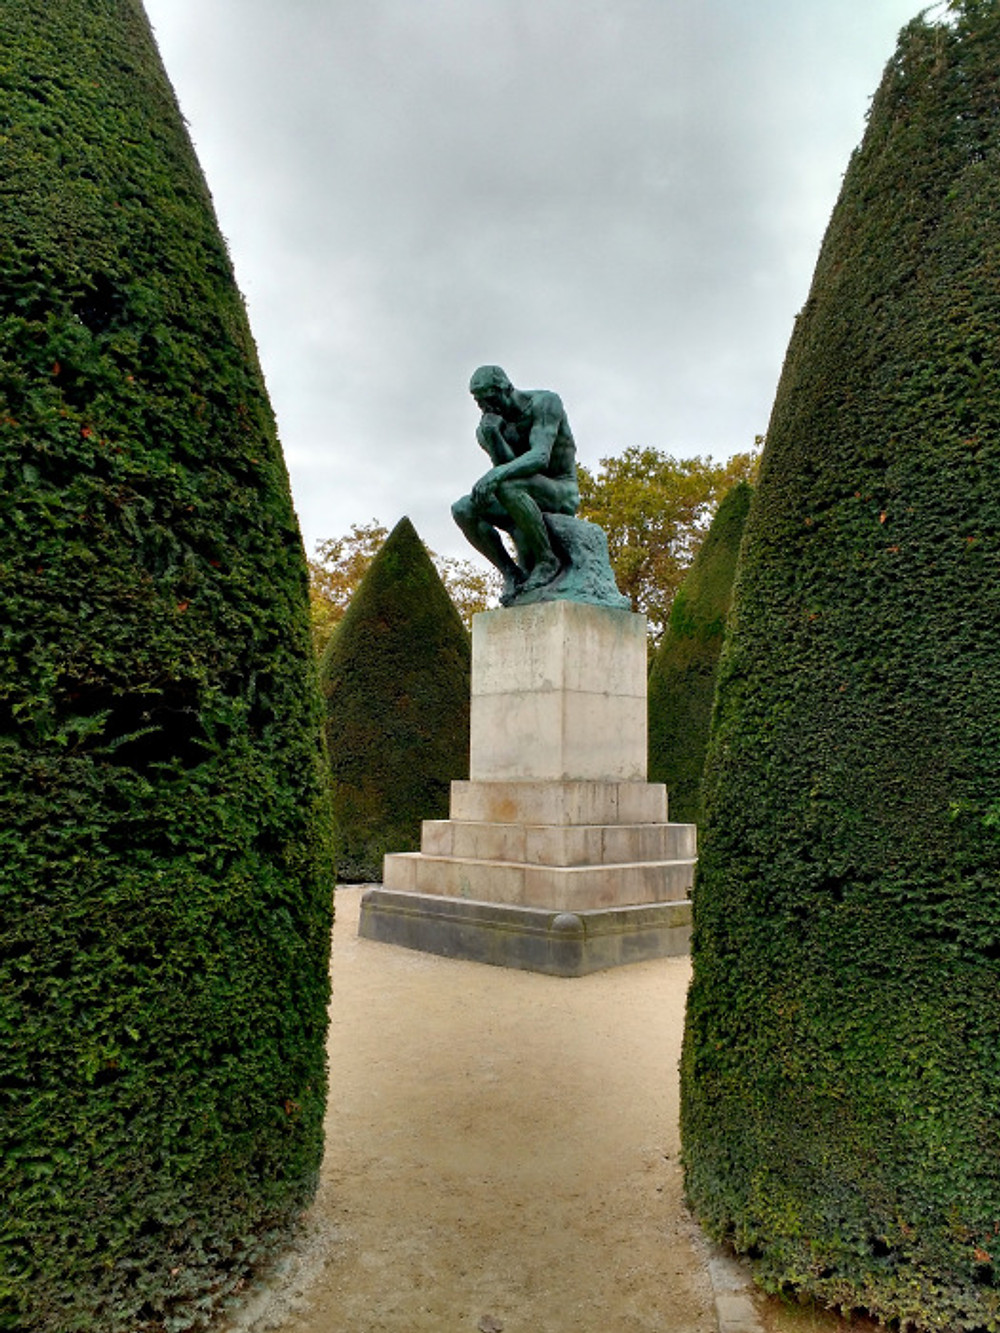 The Thinker, as captured by my husband in our time at Rodin. He loved the gardens here, as I'd predicted.